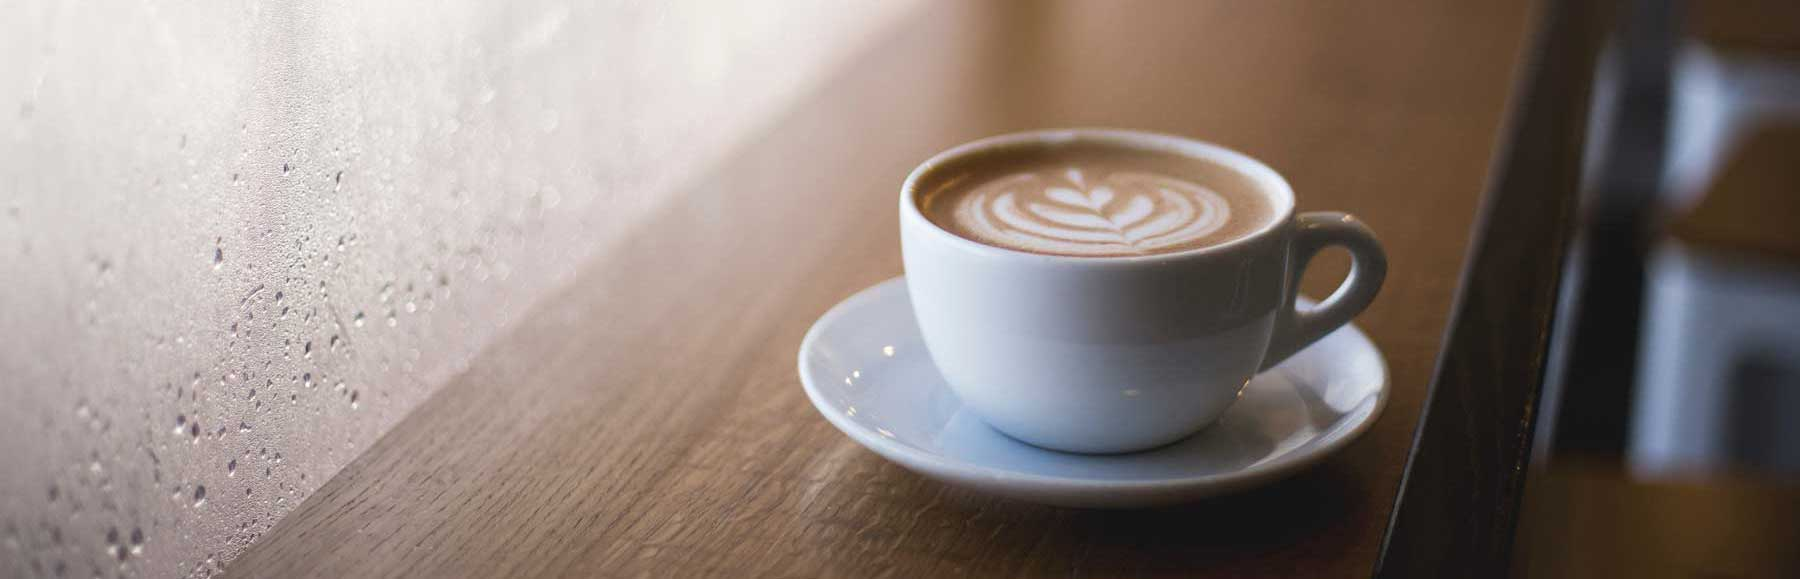 Picture of coffee in a cup by a window